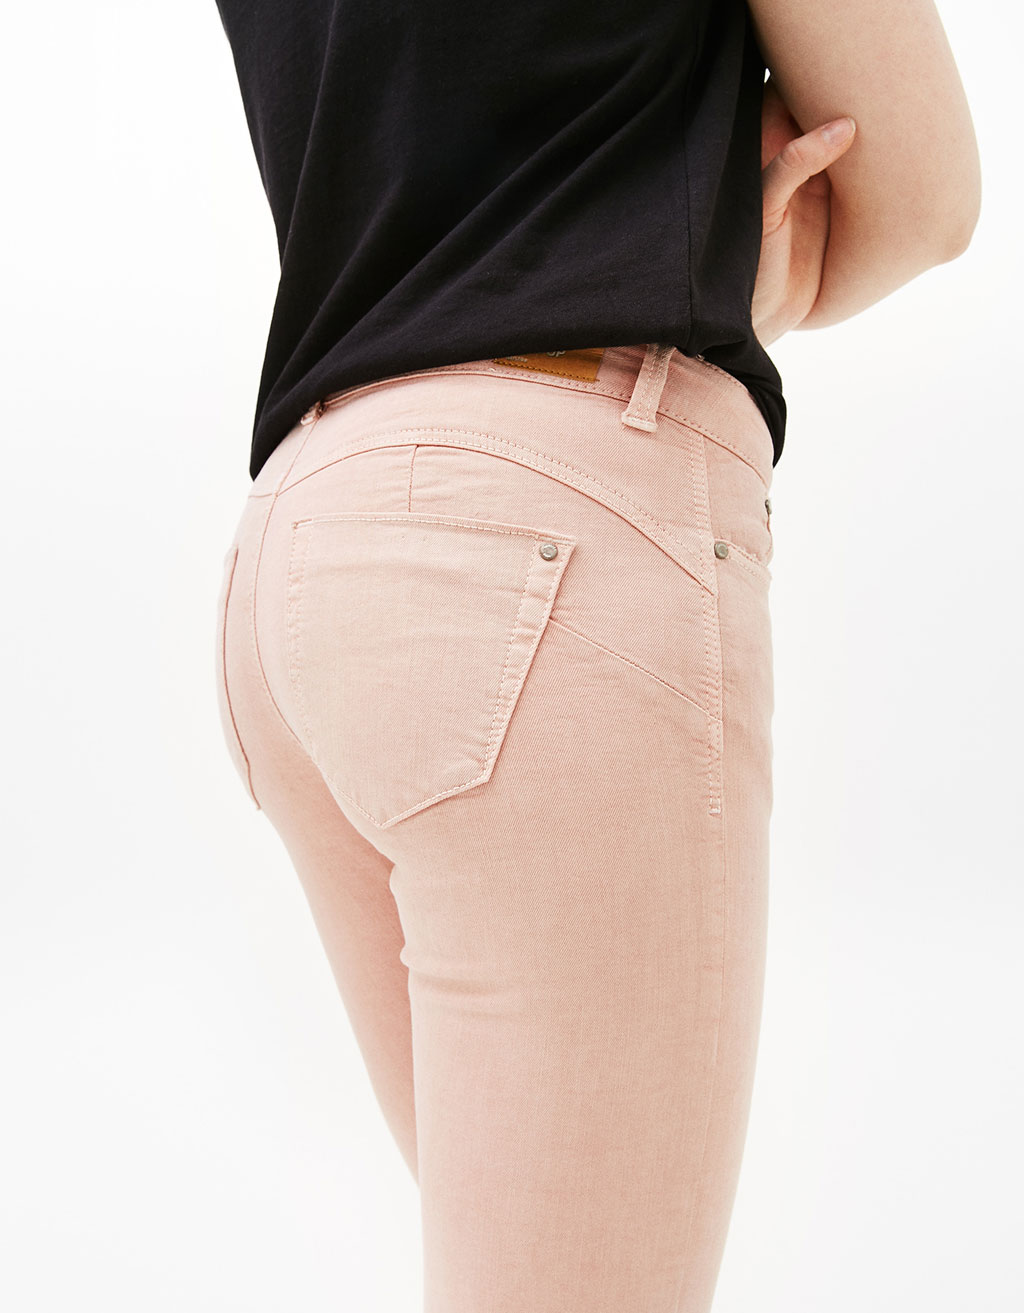 A2A (BASBSK)(MIX) PANTALON PUSH UP 5 BOLSILLOS